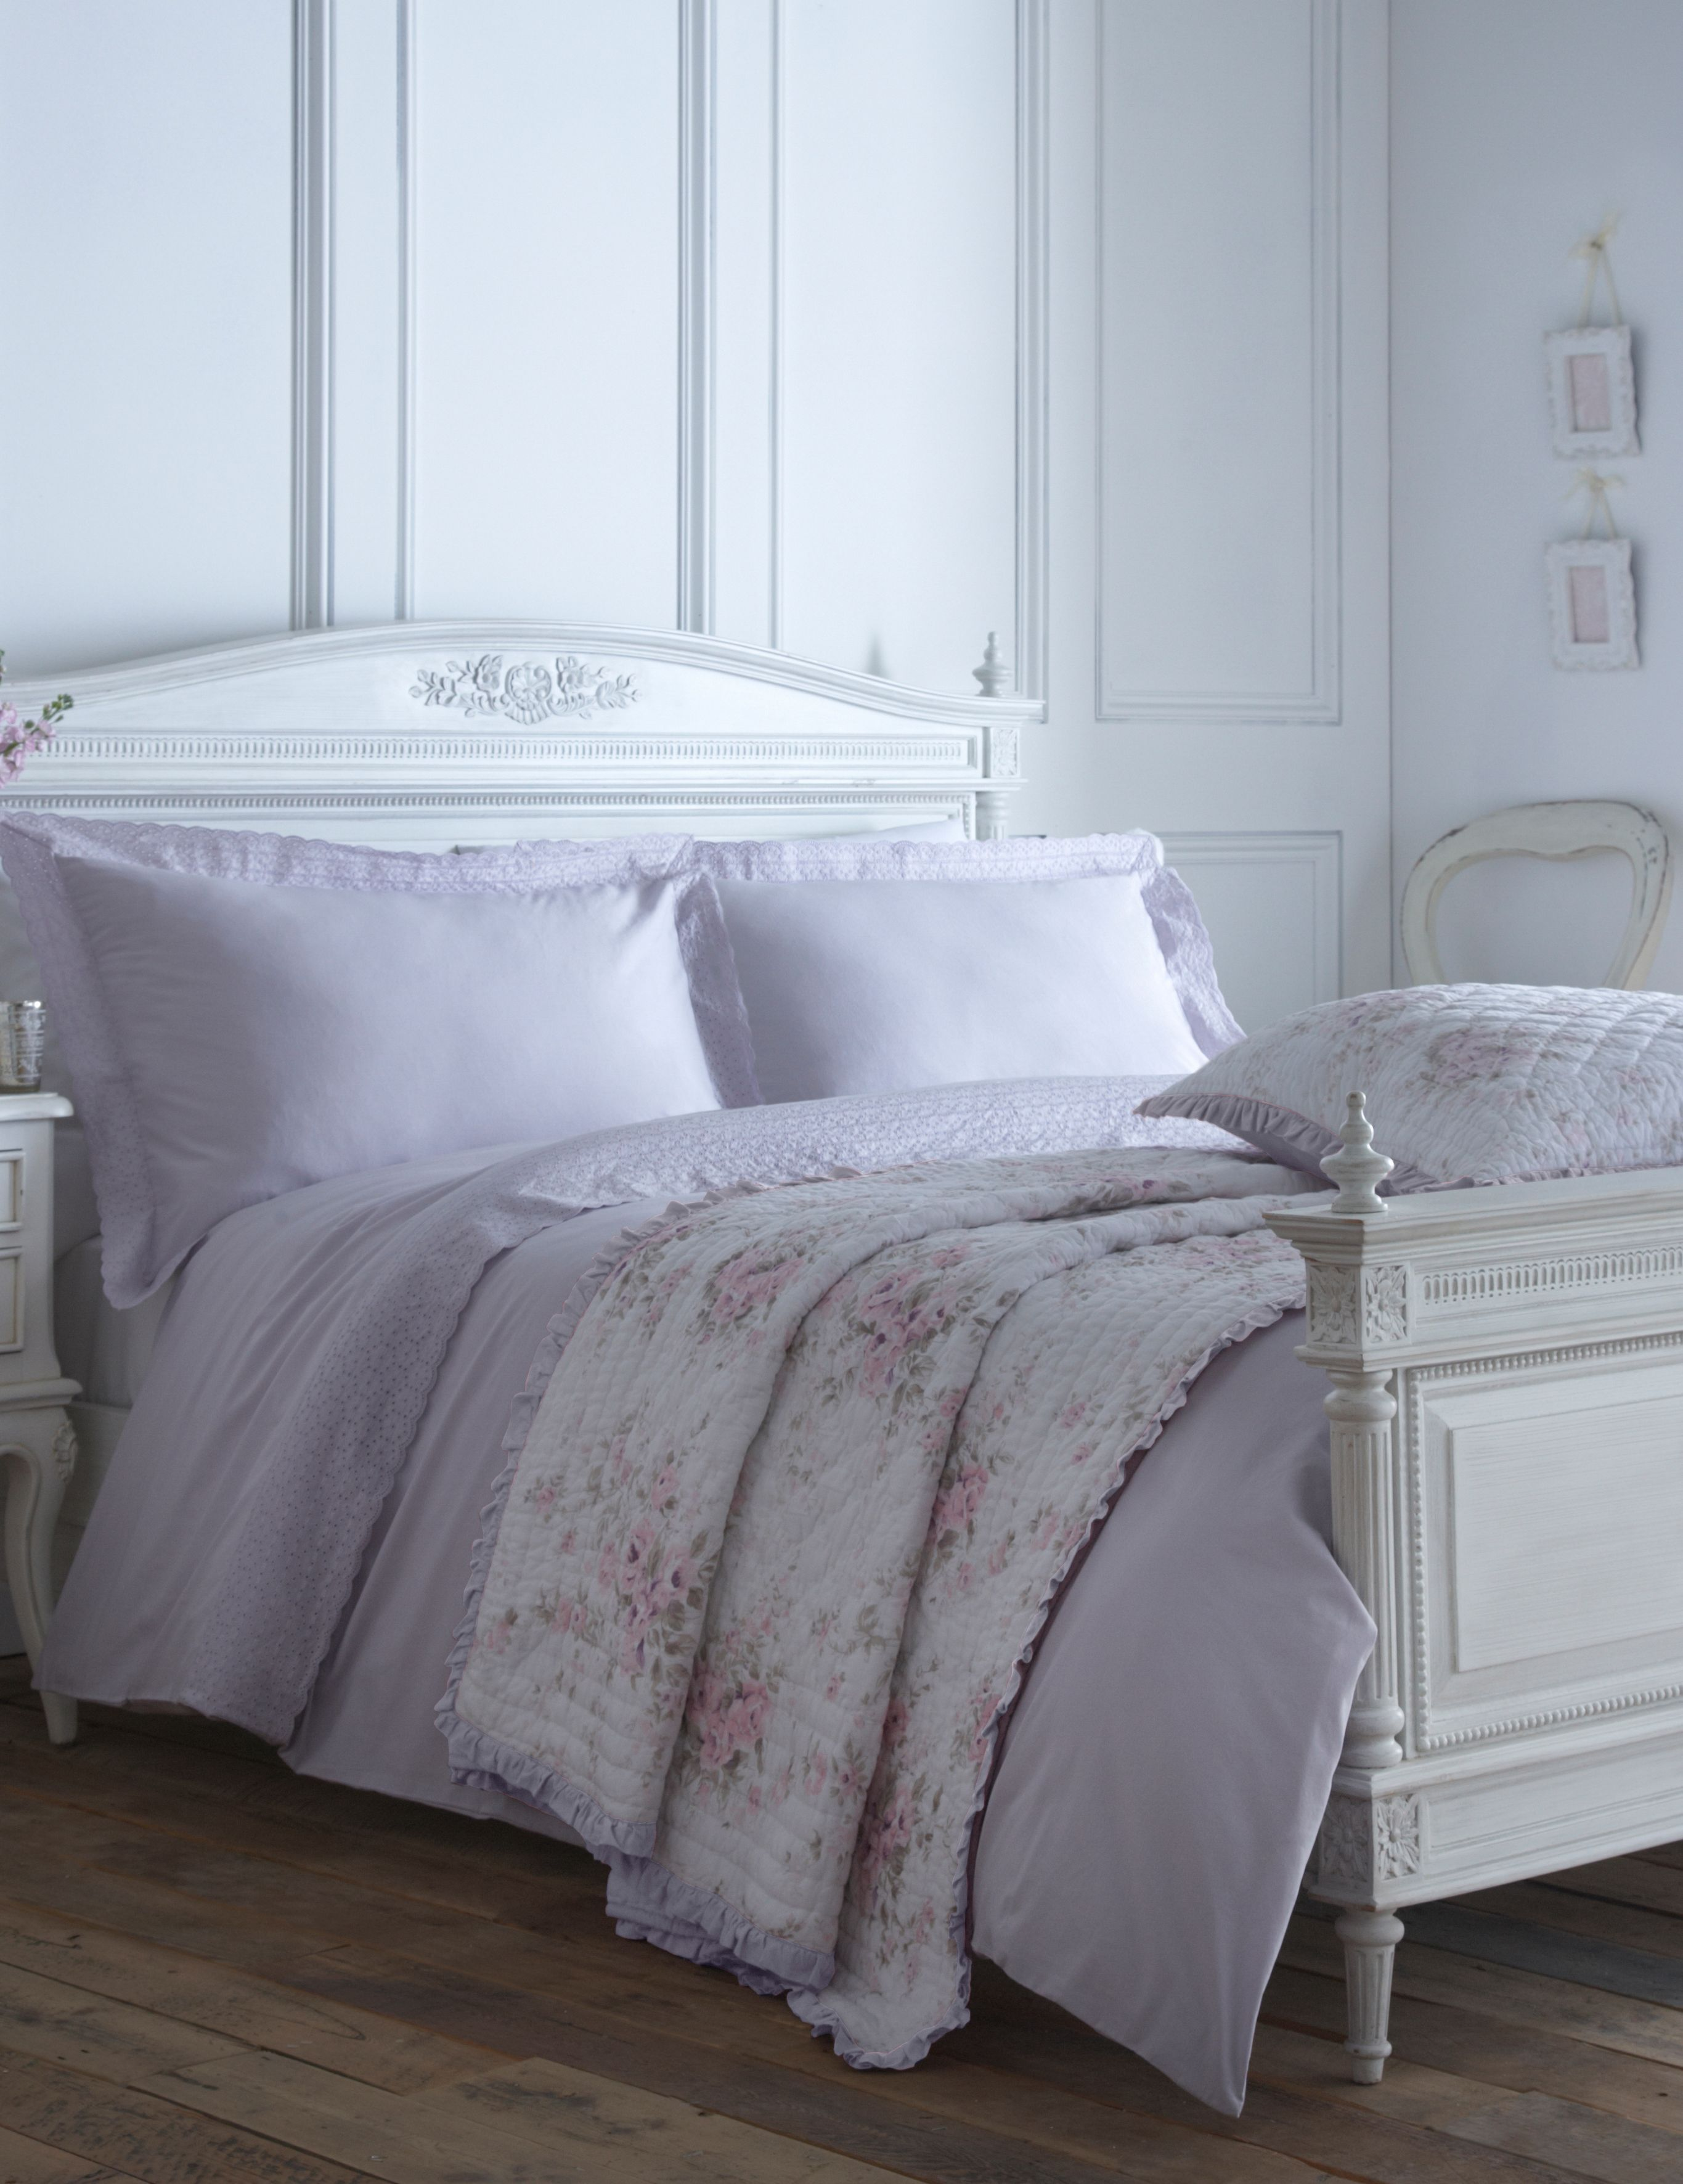 Embroidered Frill king duvet cover pink